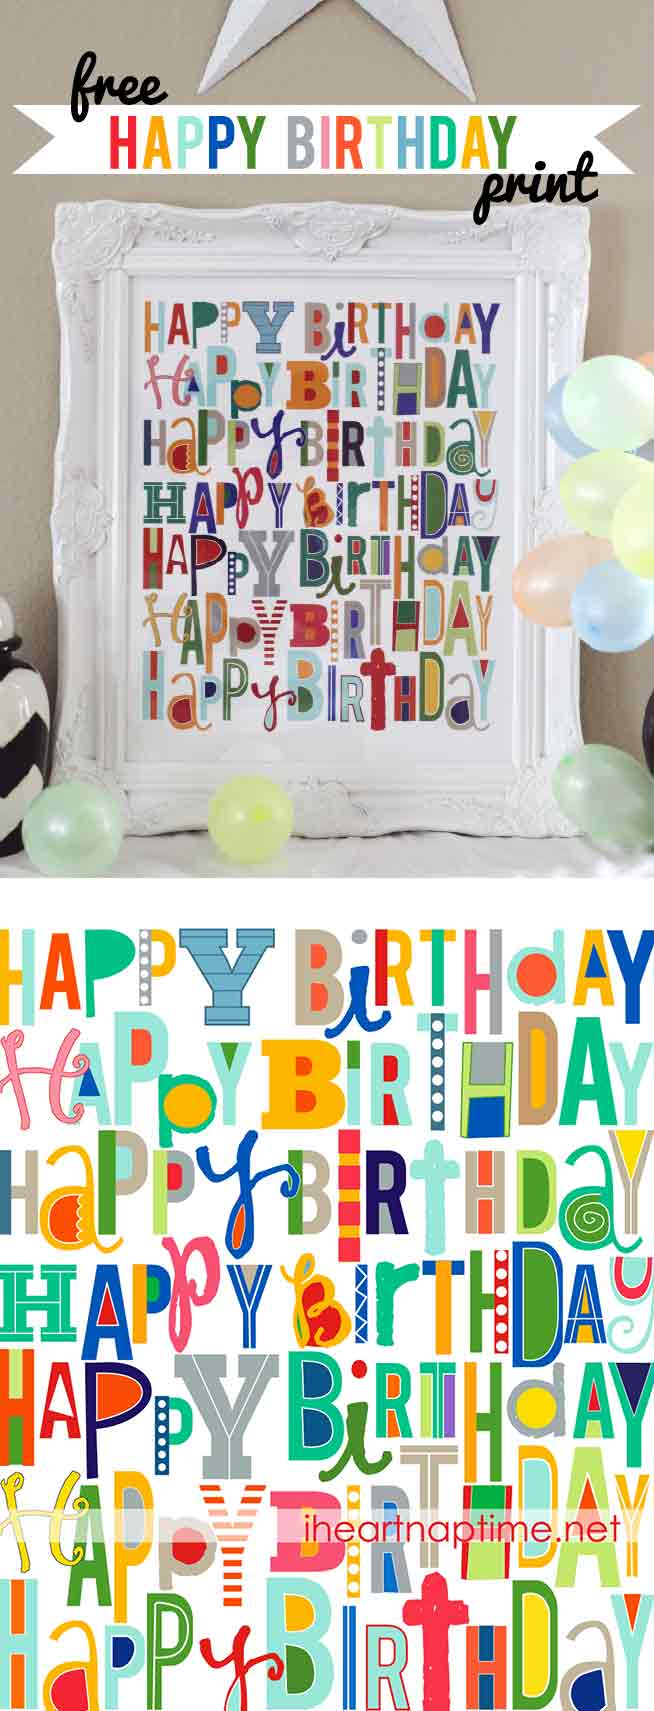 Happy birthday FREE printable -the perfect decoration to bring out on all your family's birthdays!